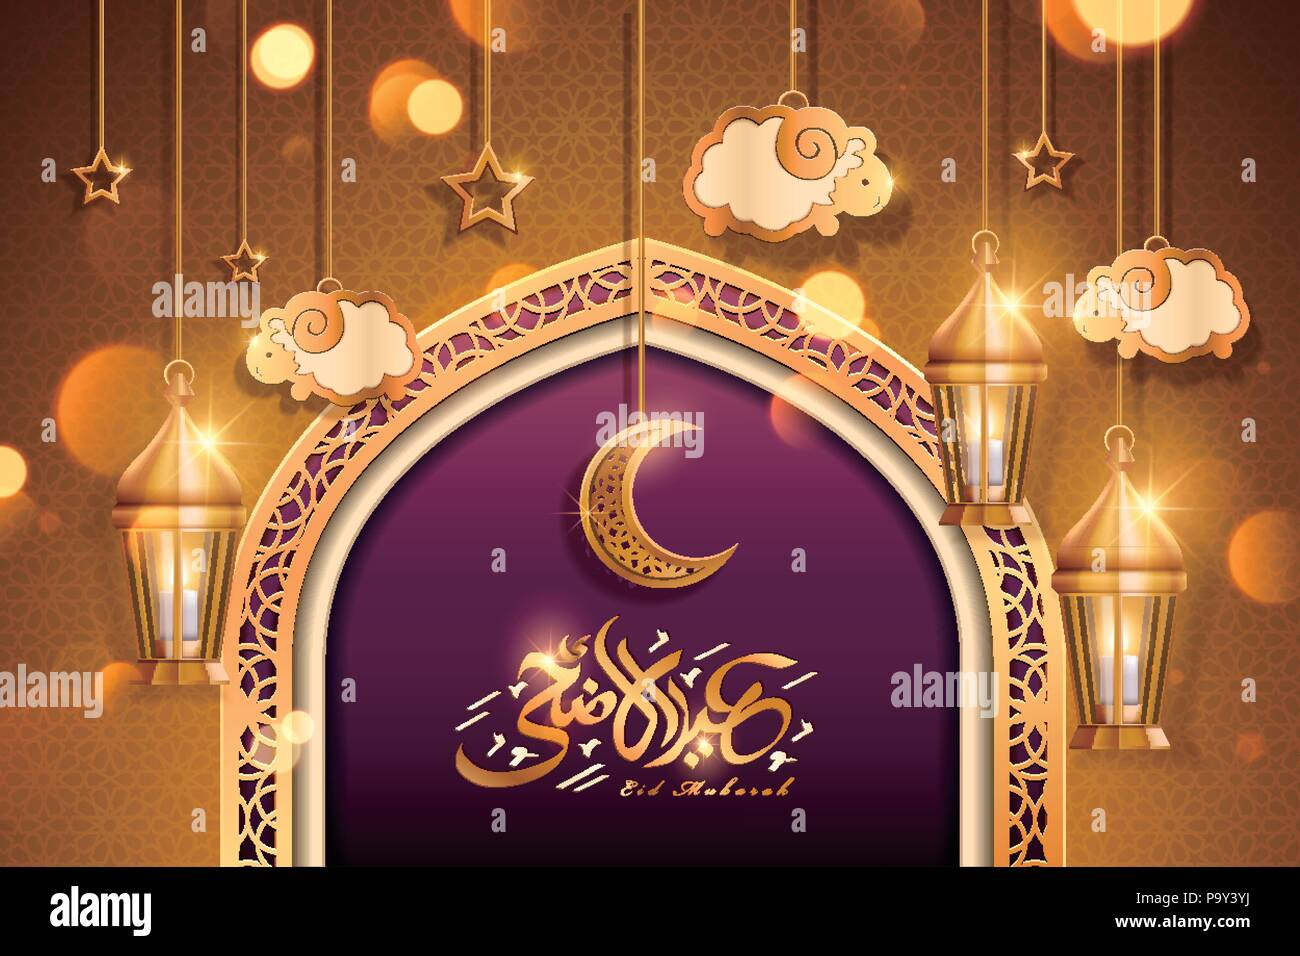 Eid Al Adha Greeting Card On Arch Background With Lovely Sheep